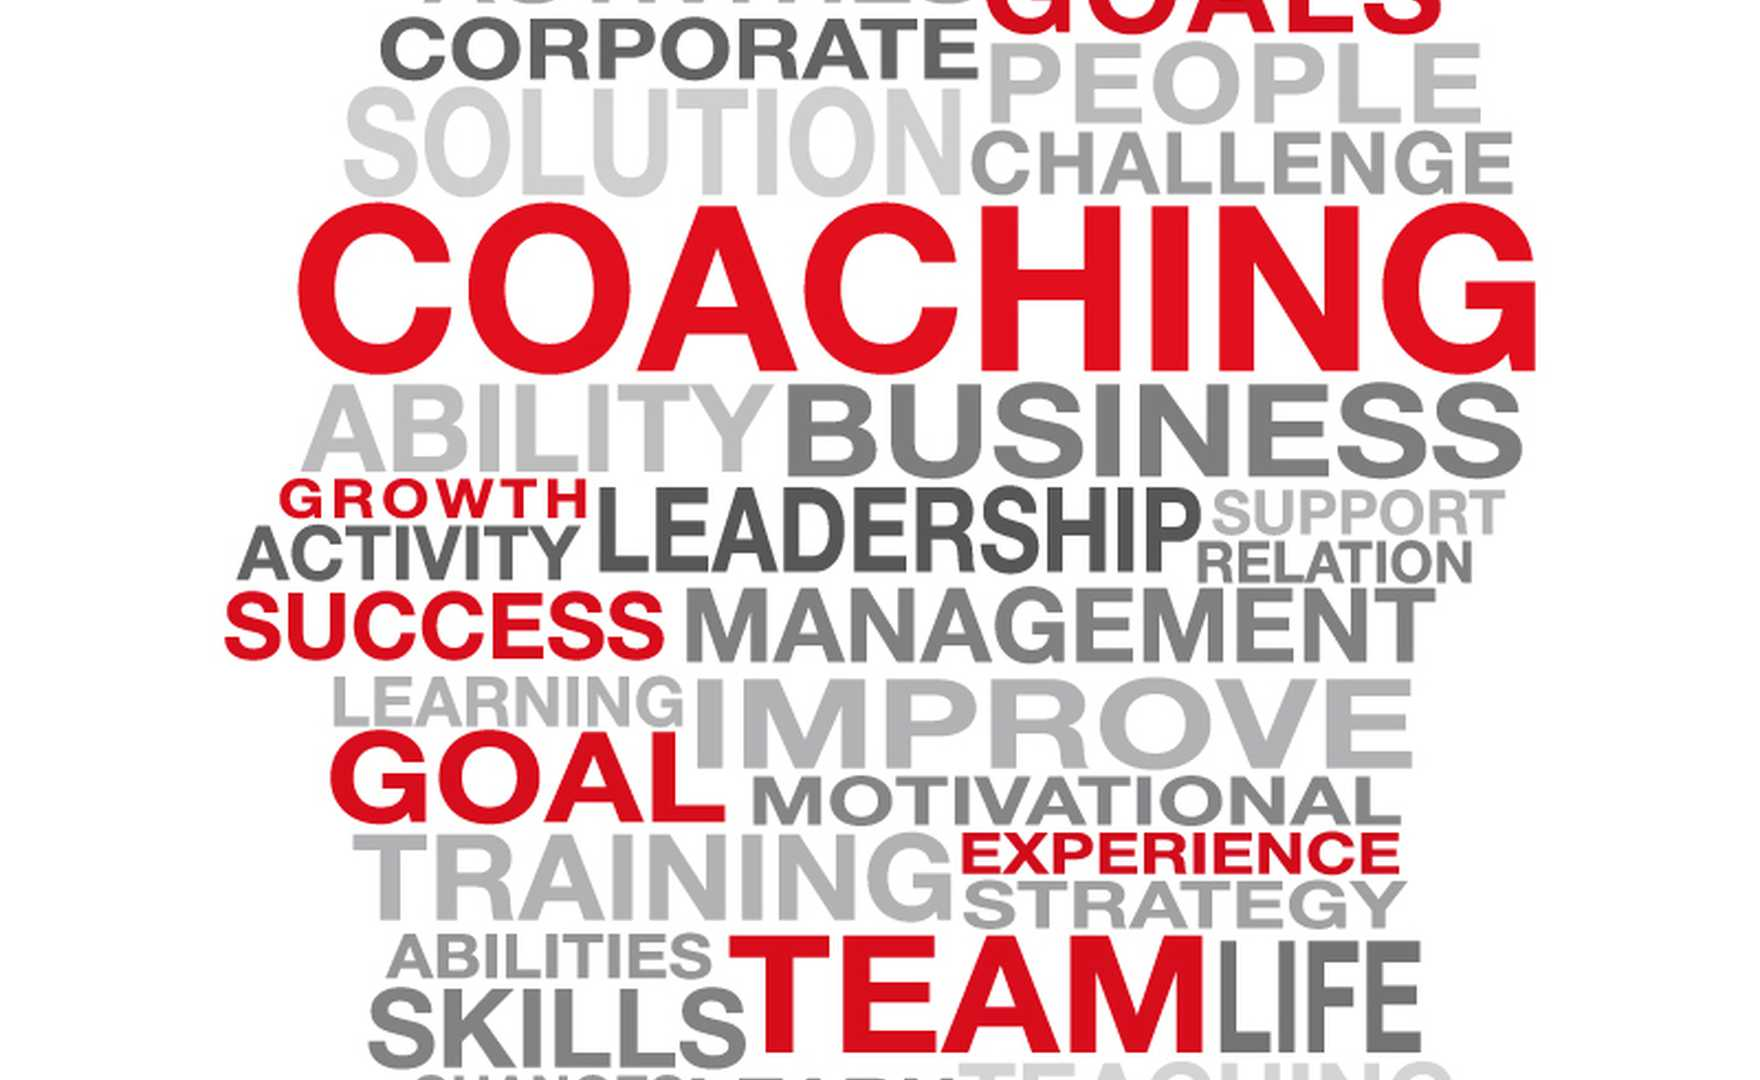 Five misconceptions about executive coaching